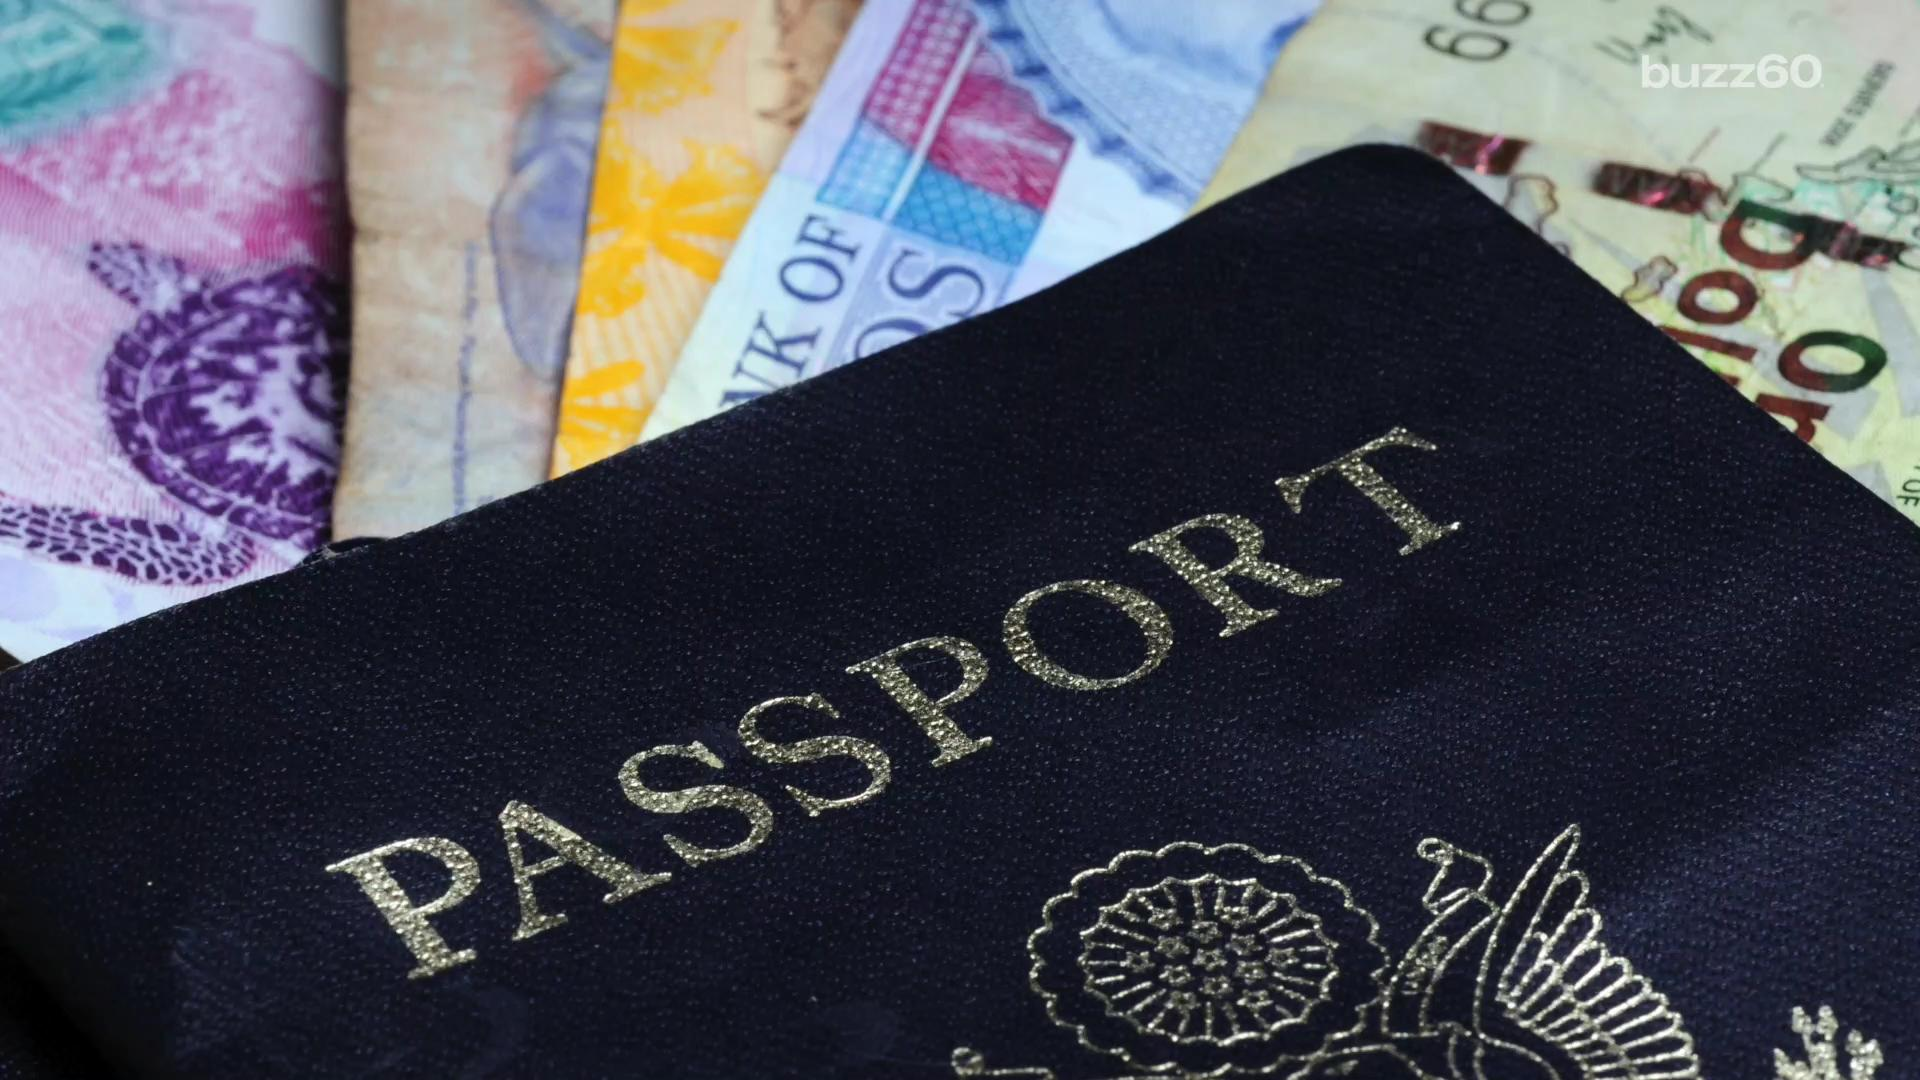 Passport tips for safe and fun international travel